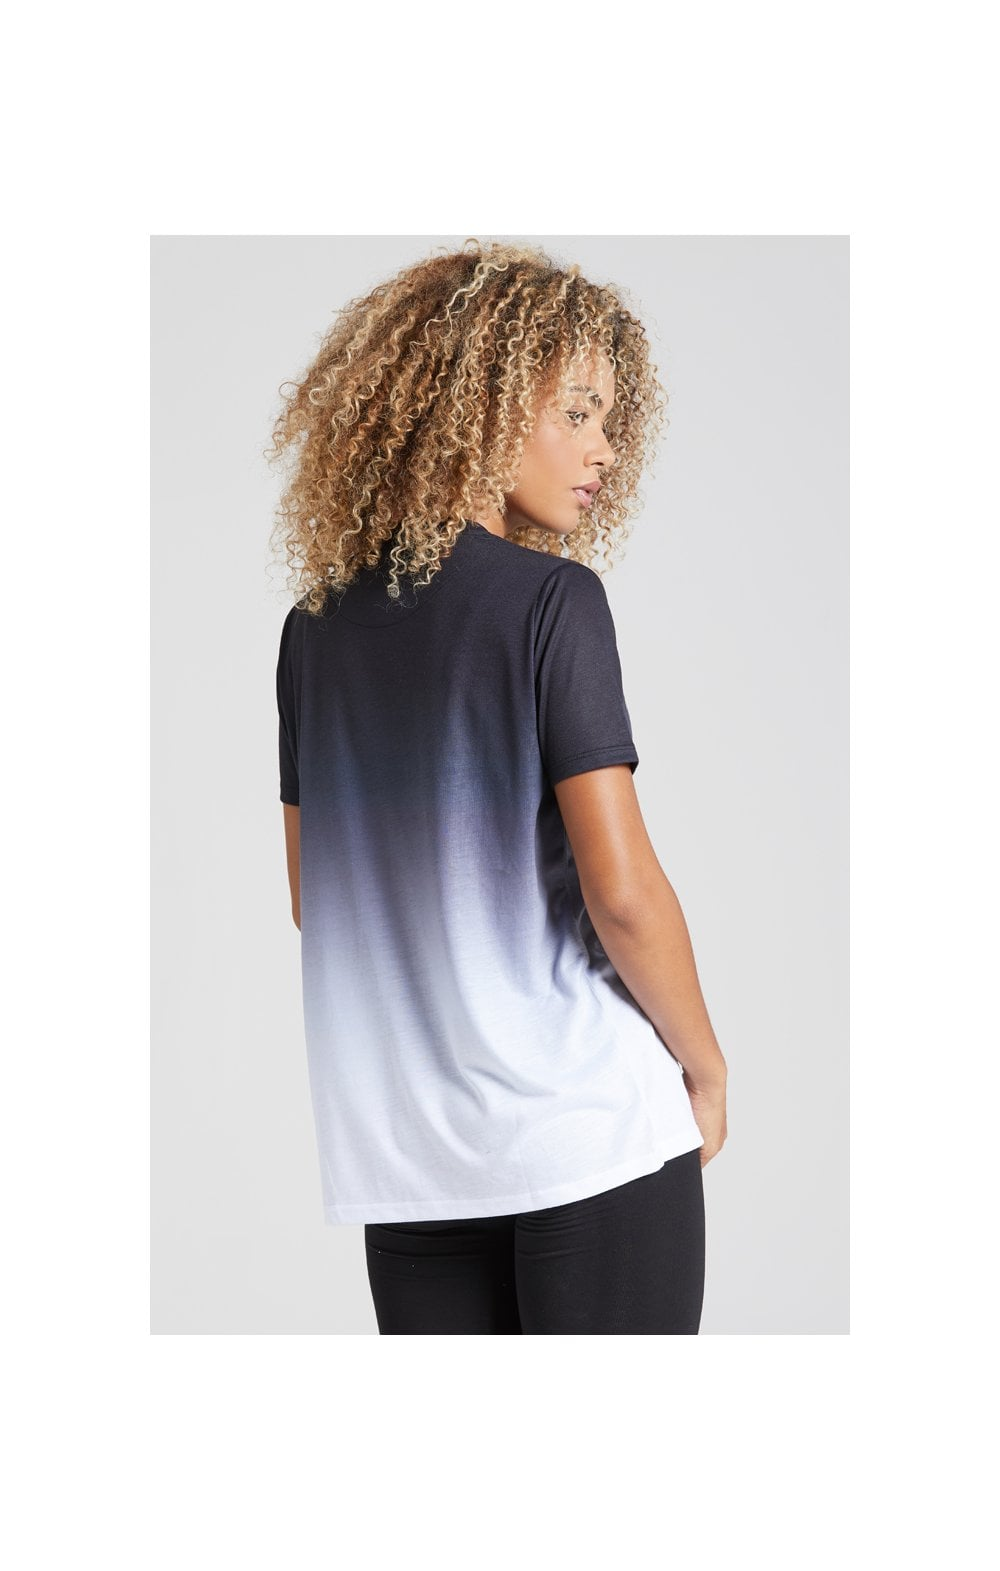 Load image into Gallery viewer, SikSilk Fade Logo Boyfriend Tee - Black & White (5)